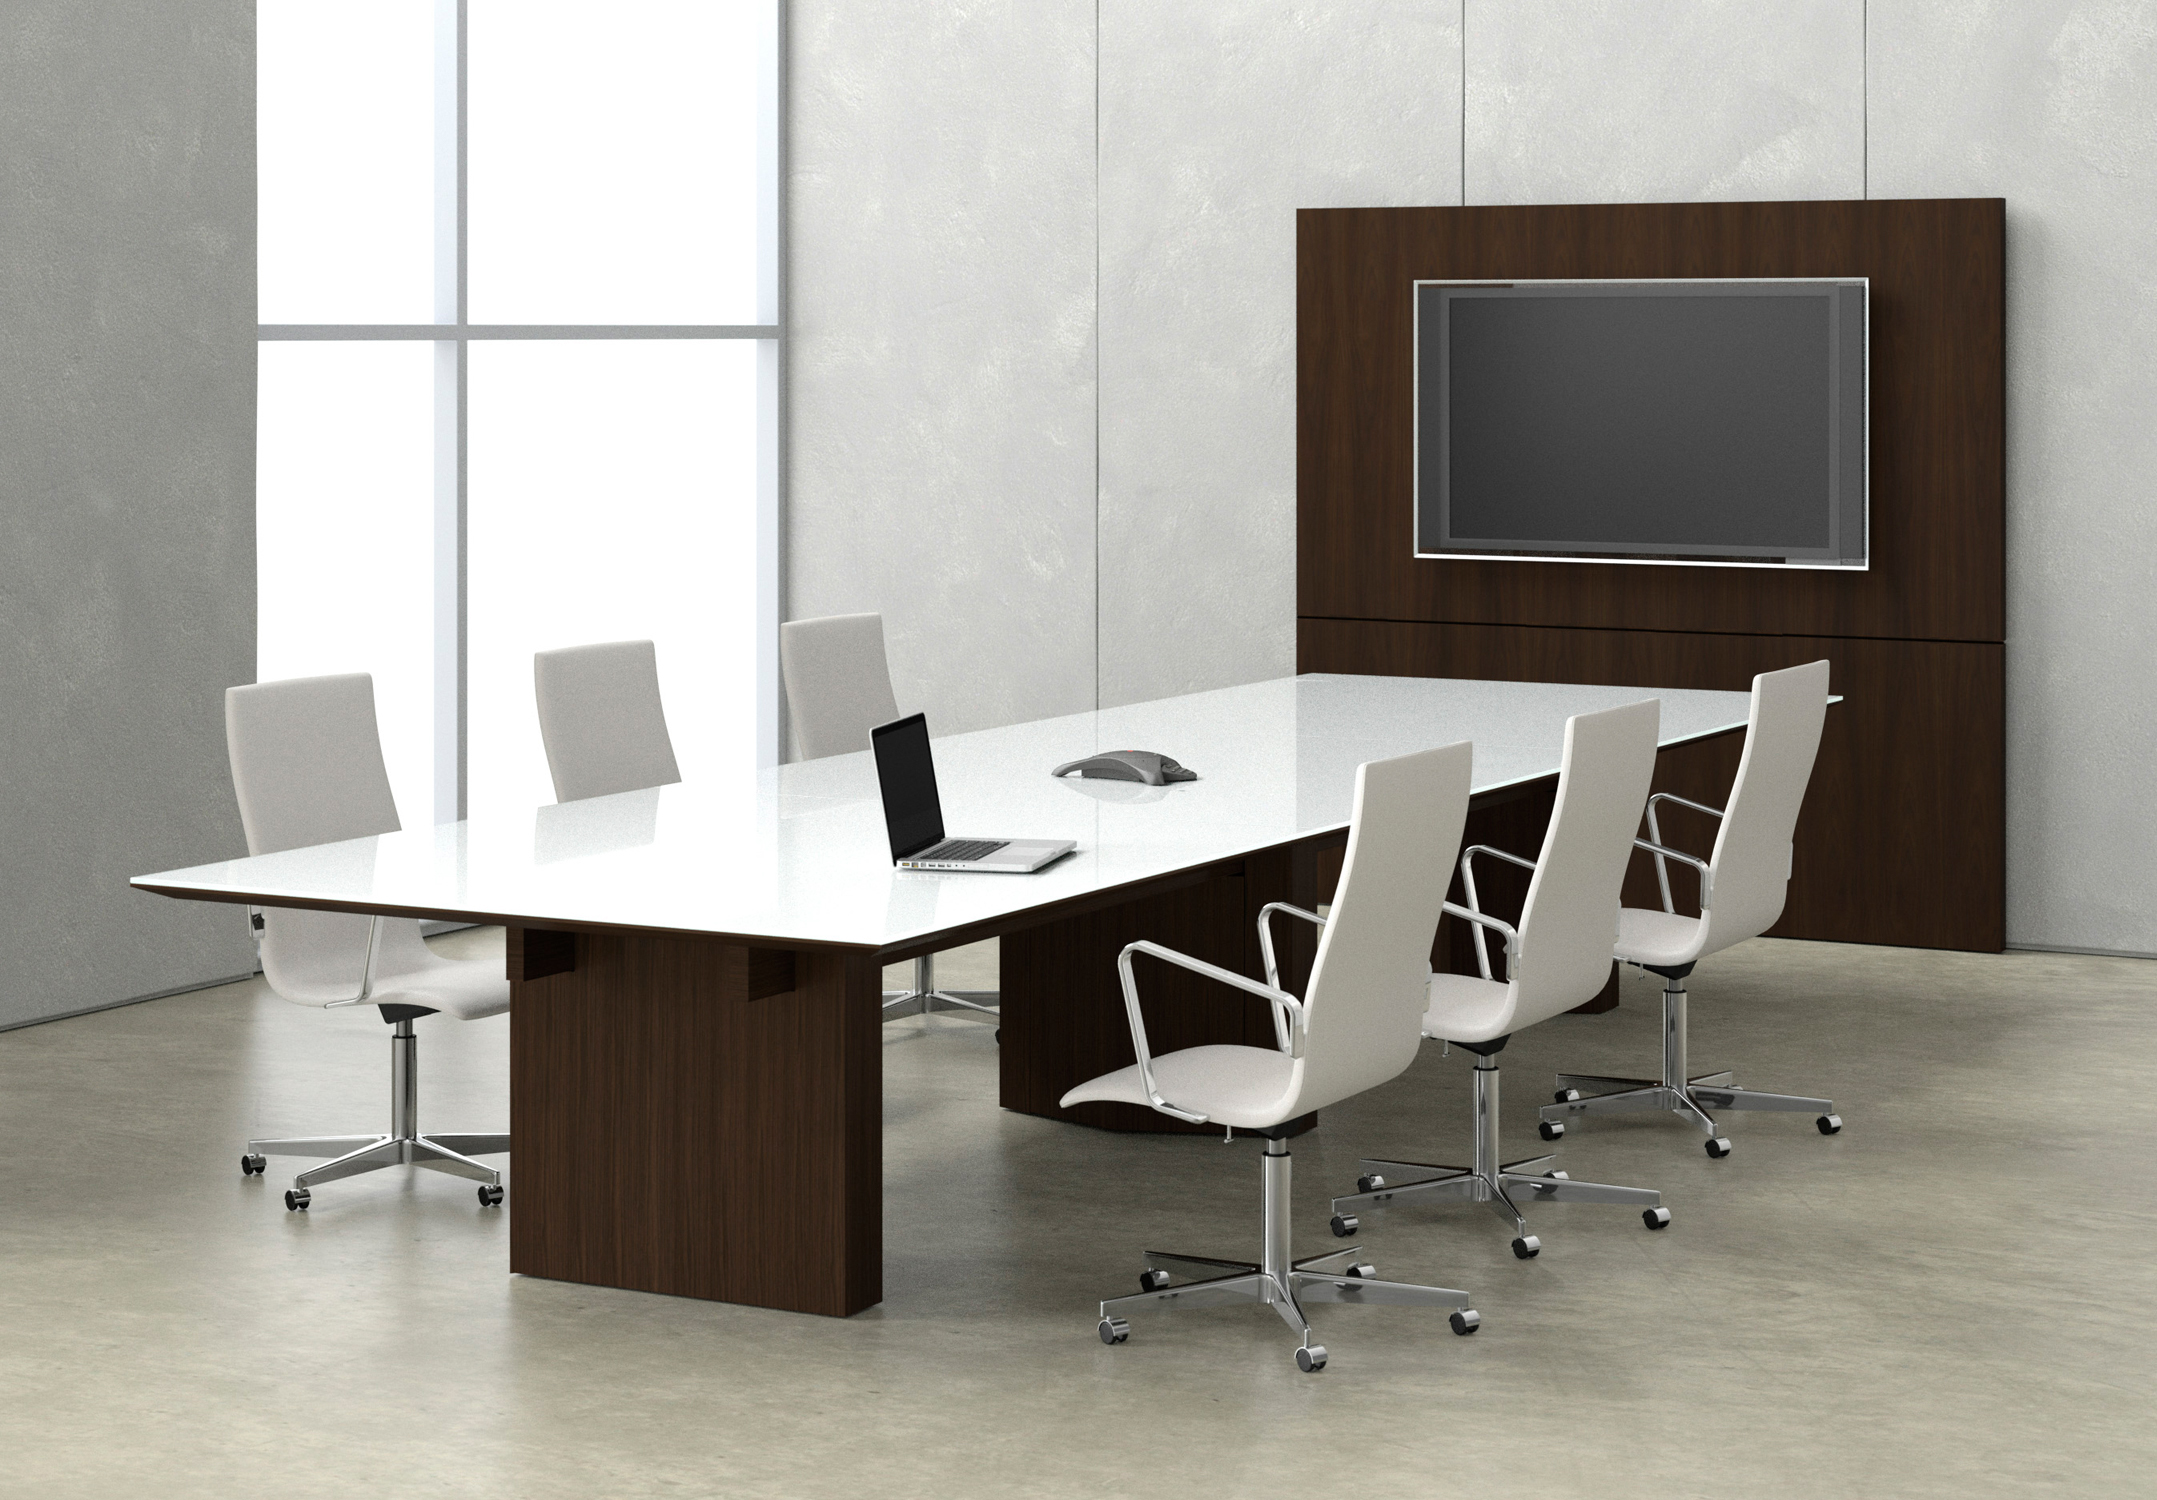 Impress Board Members With These Five Modern Conference Room Designs